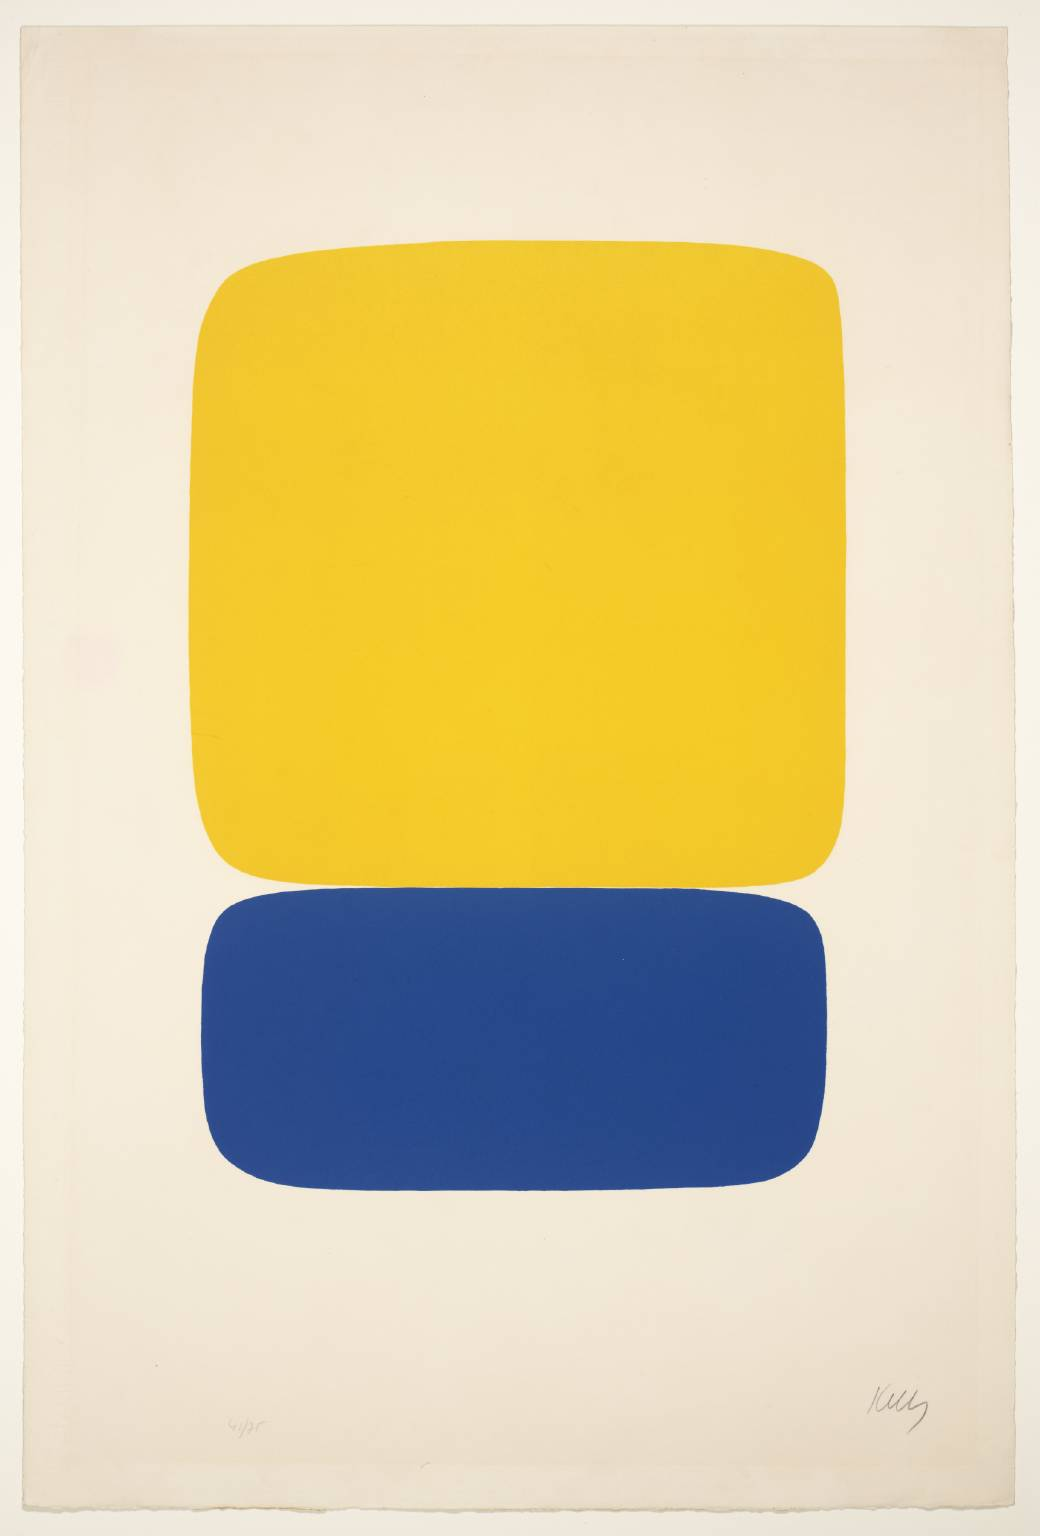 Yellow over Dark Blue 1964-5 Ellsworth Kelly born 1923 Presented by Mary Martin in memory of her husband Bill Morton 1989 http://www.tate.org.uk/art/work/P11222